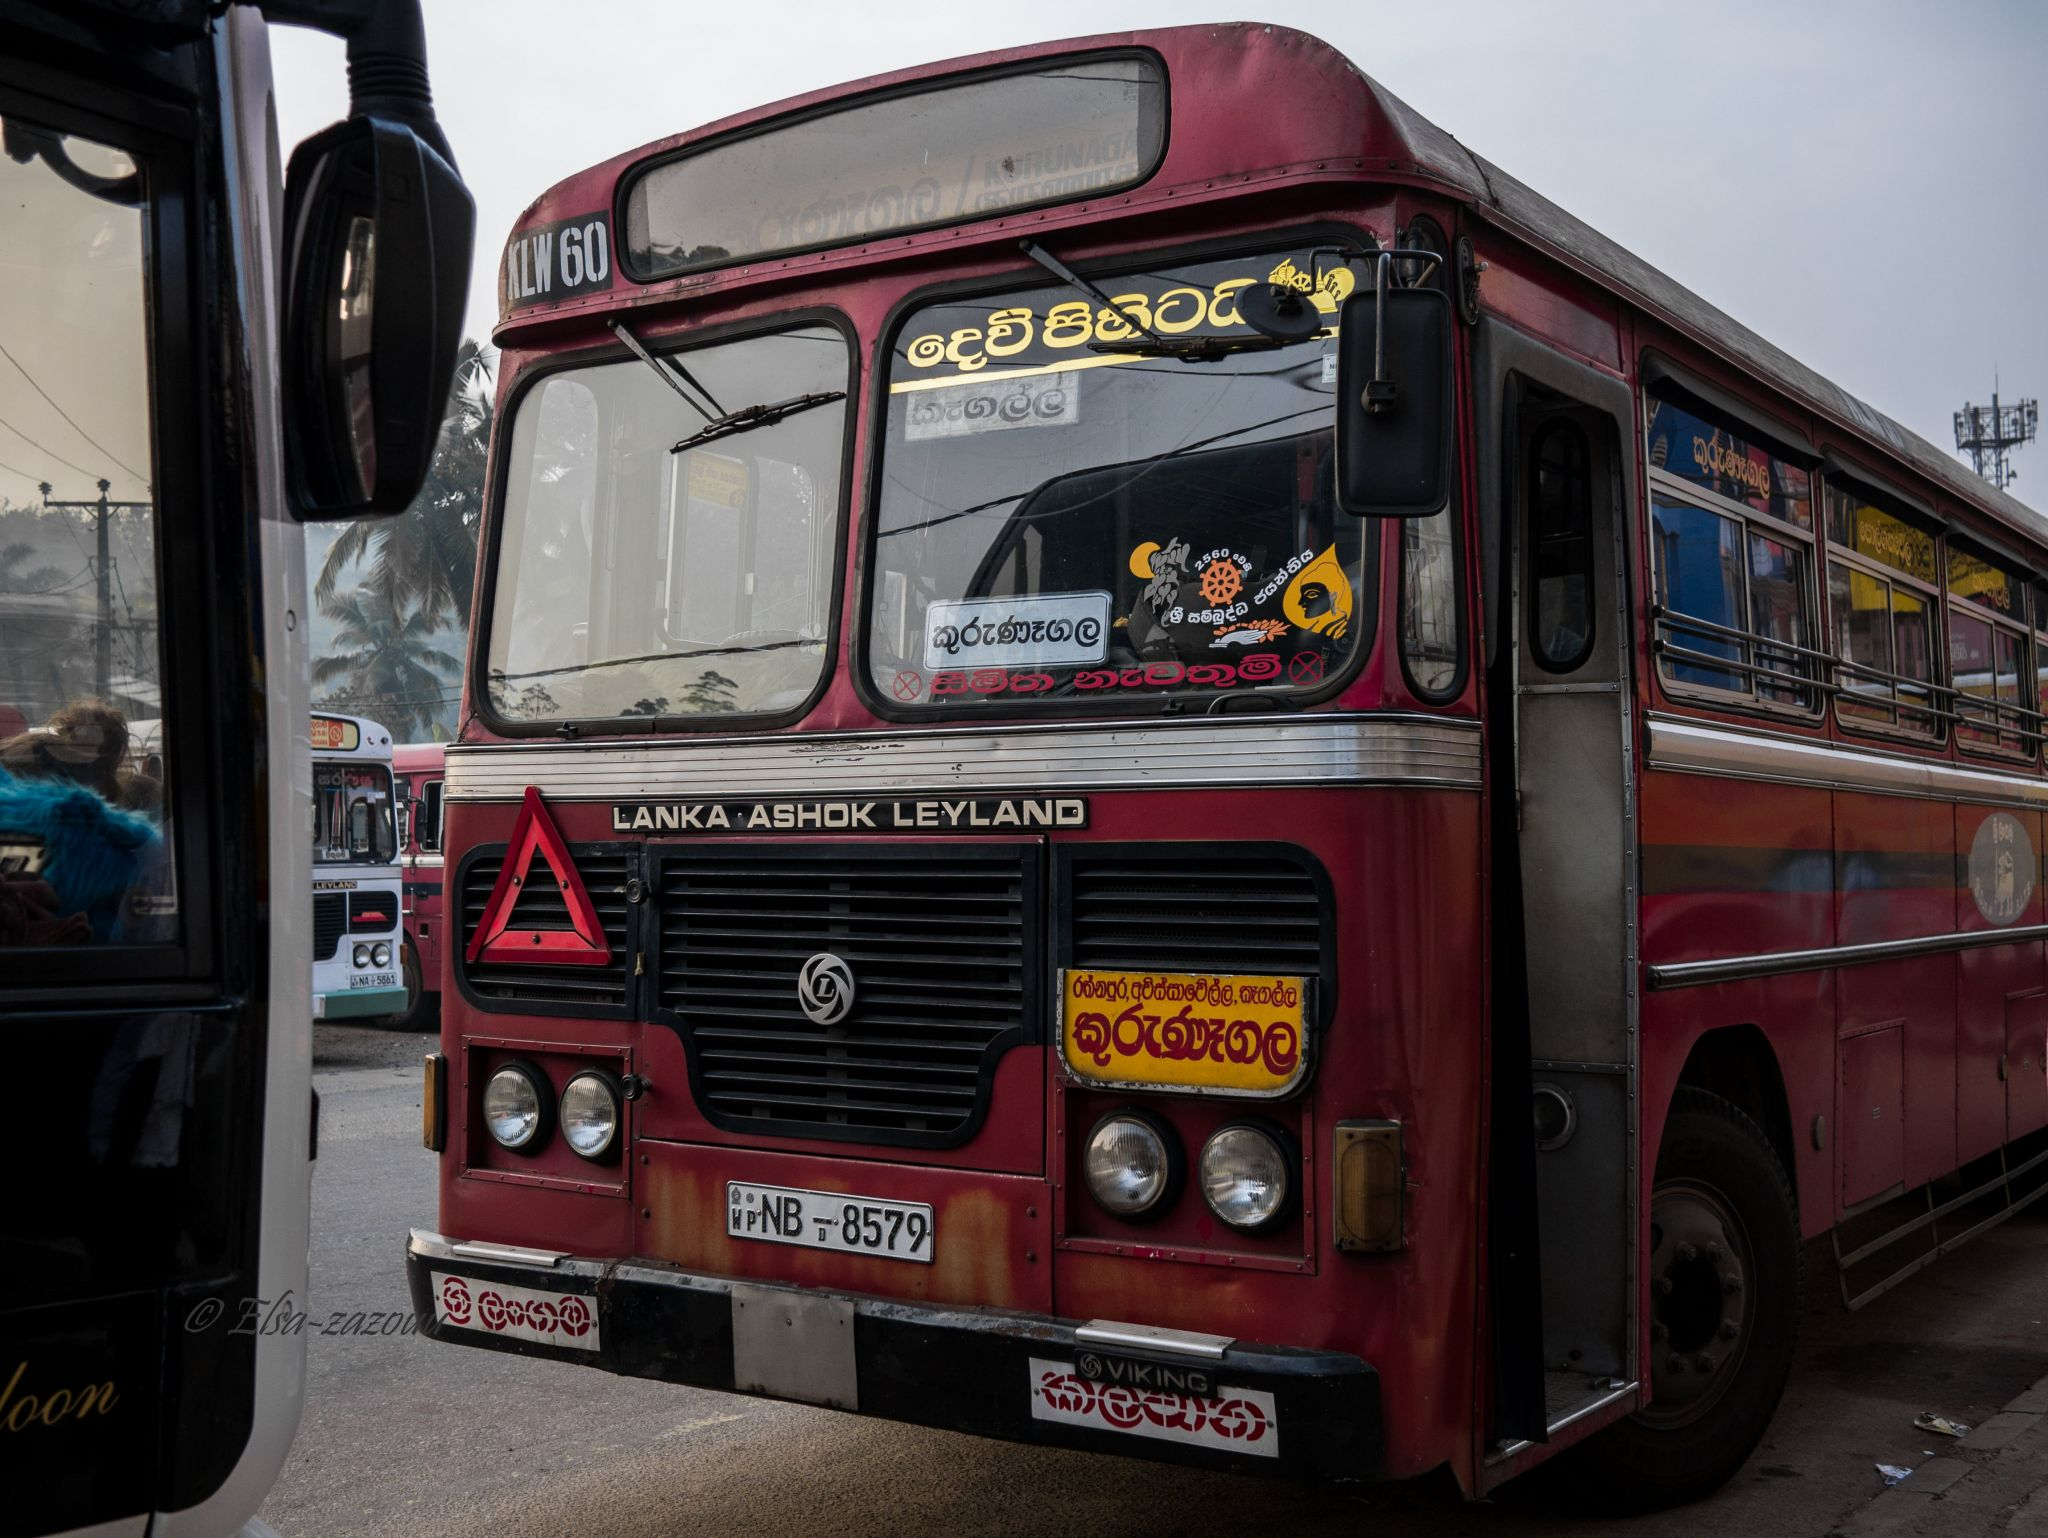 Kalawana bus station, Sri Lanka